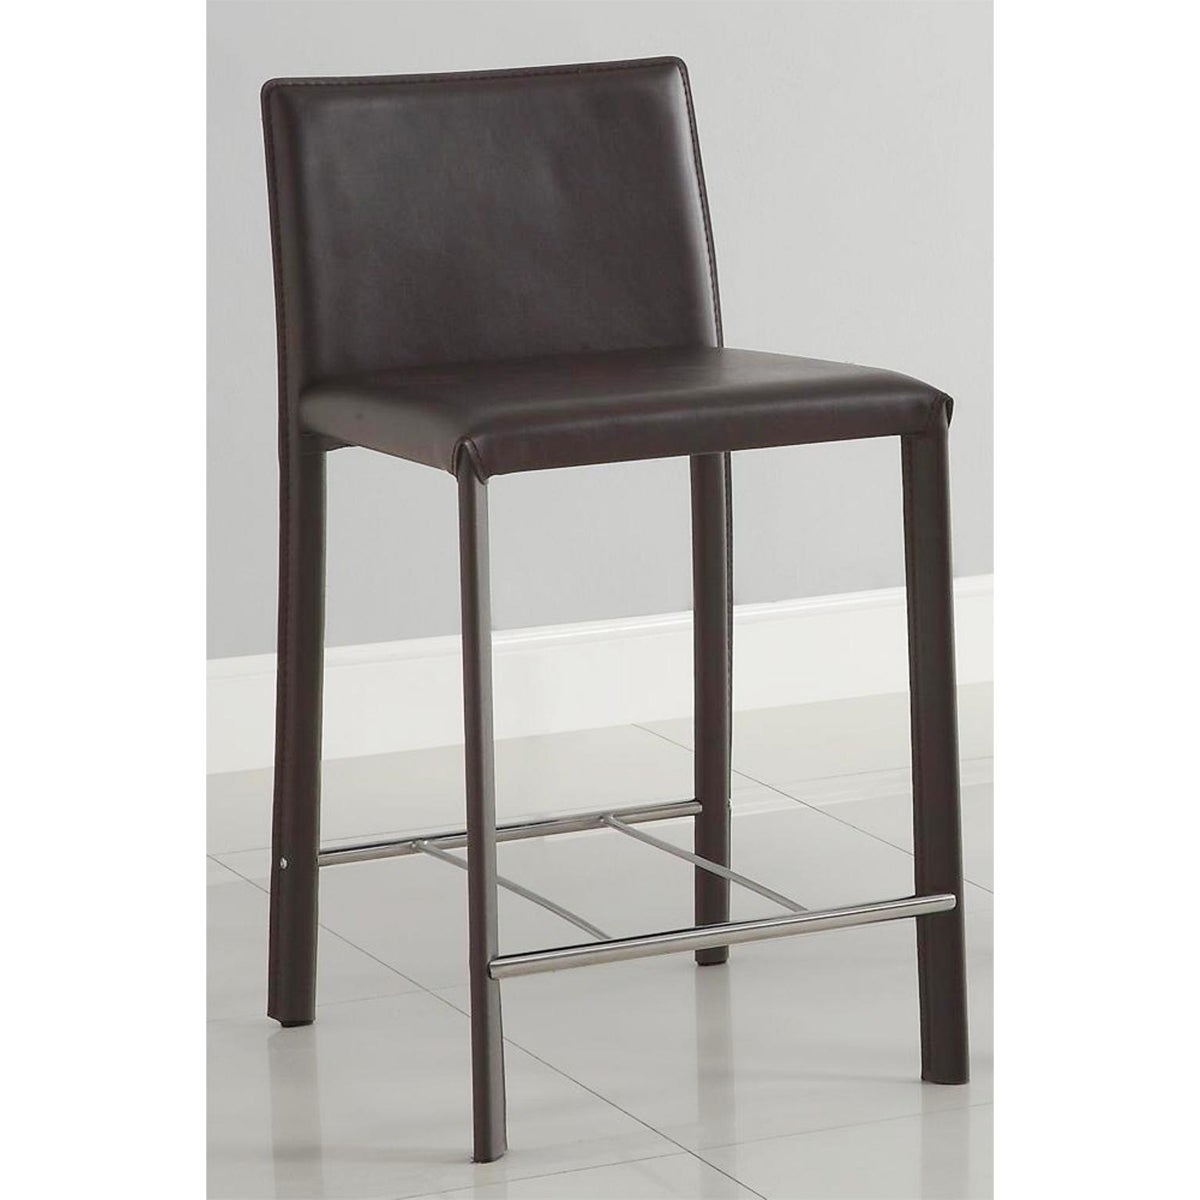 Euro Design Brown Bicast Leather Counter Stool Set 2 Acrylic Counter Stools, The Versatile Seating Option